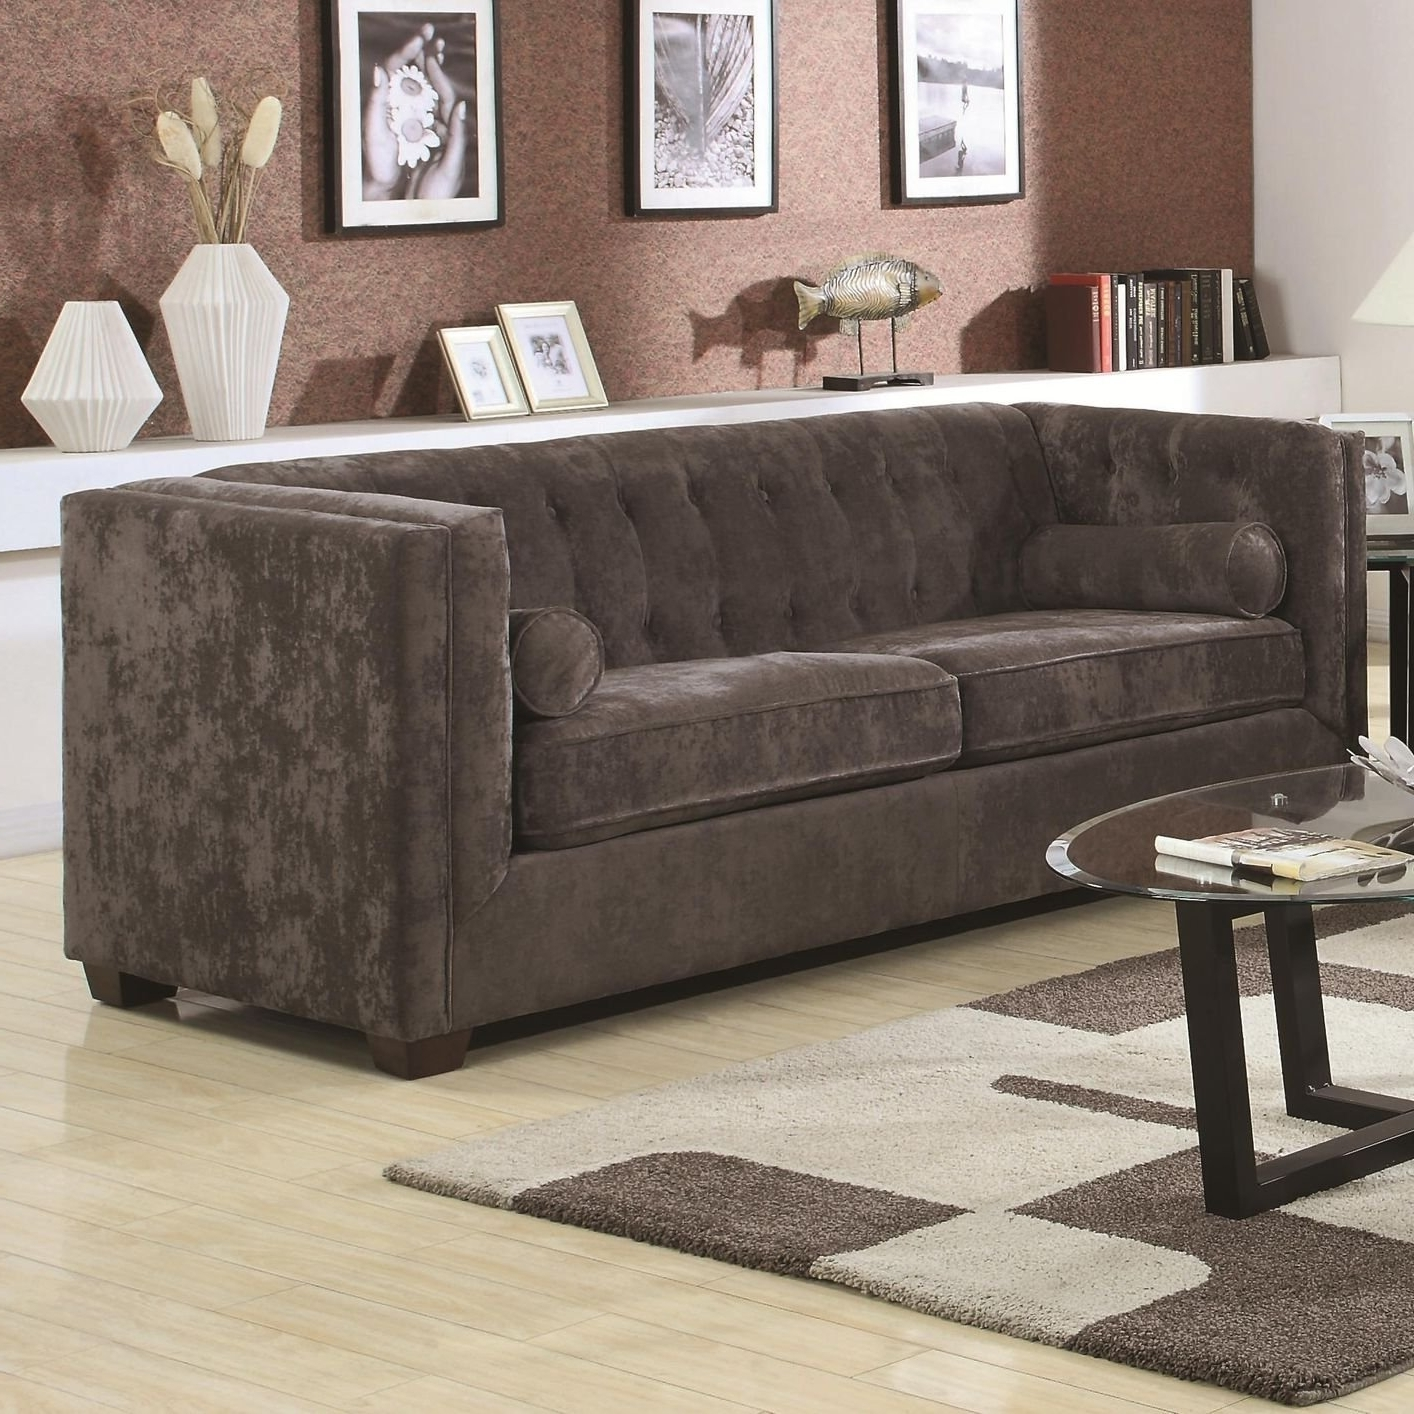 Most Current Dufresne Sectional Sofas Inside Furniture : Klaussner Alexis Sofa Sofa Set At Cheap Rate In (View 12 of 20)